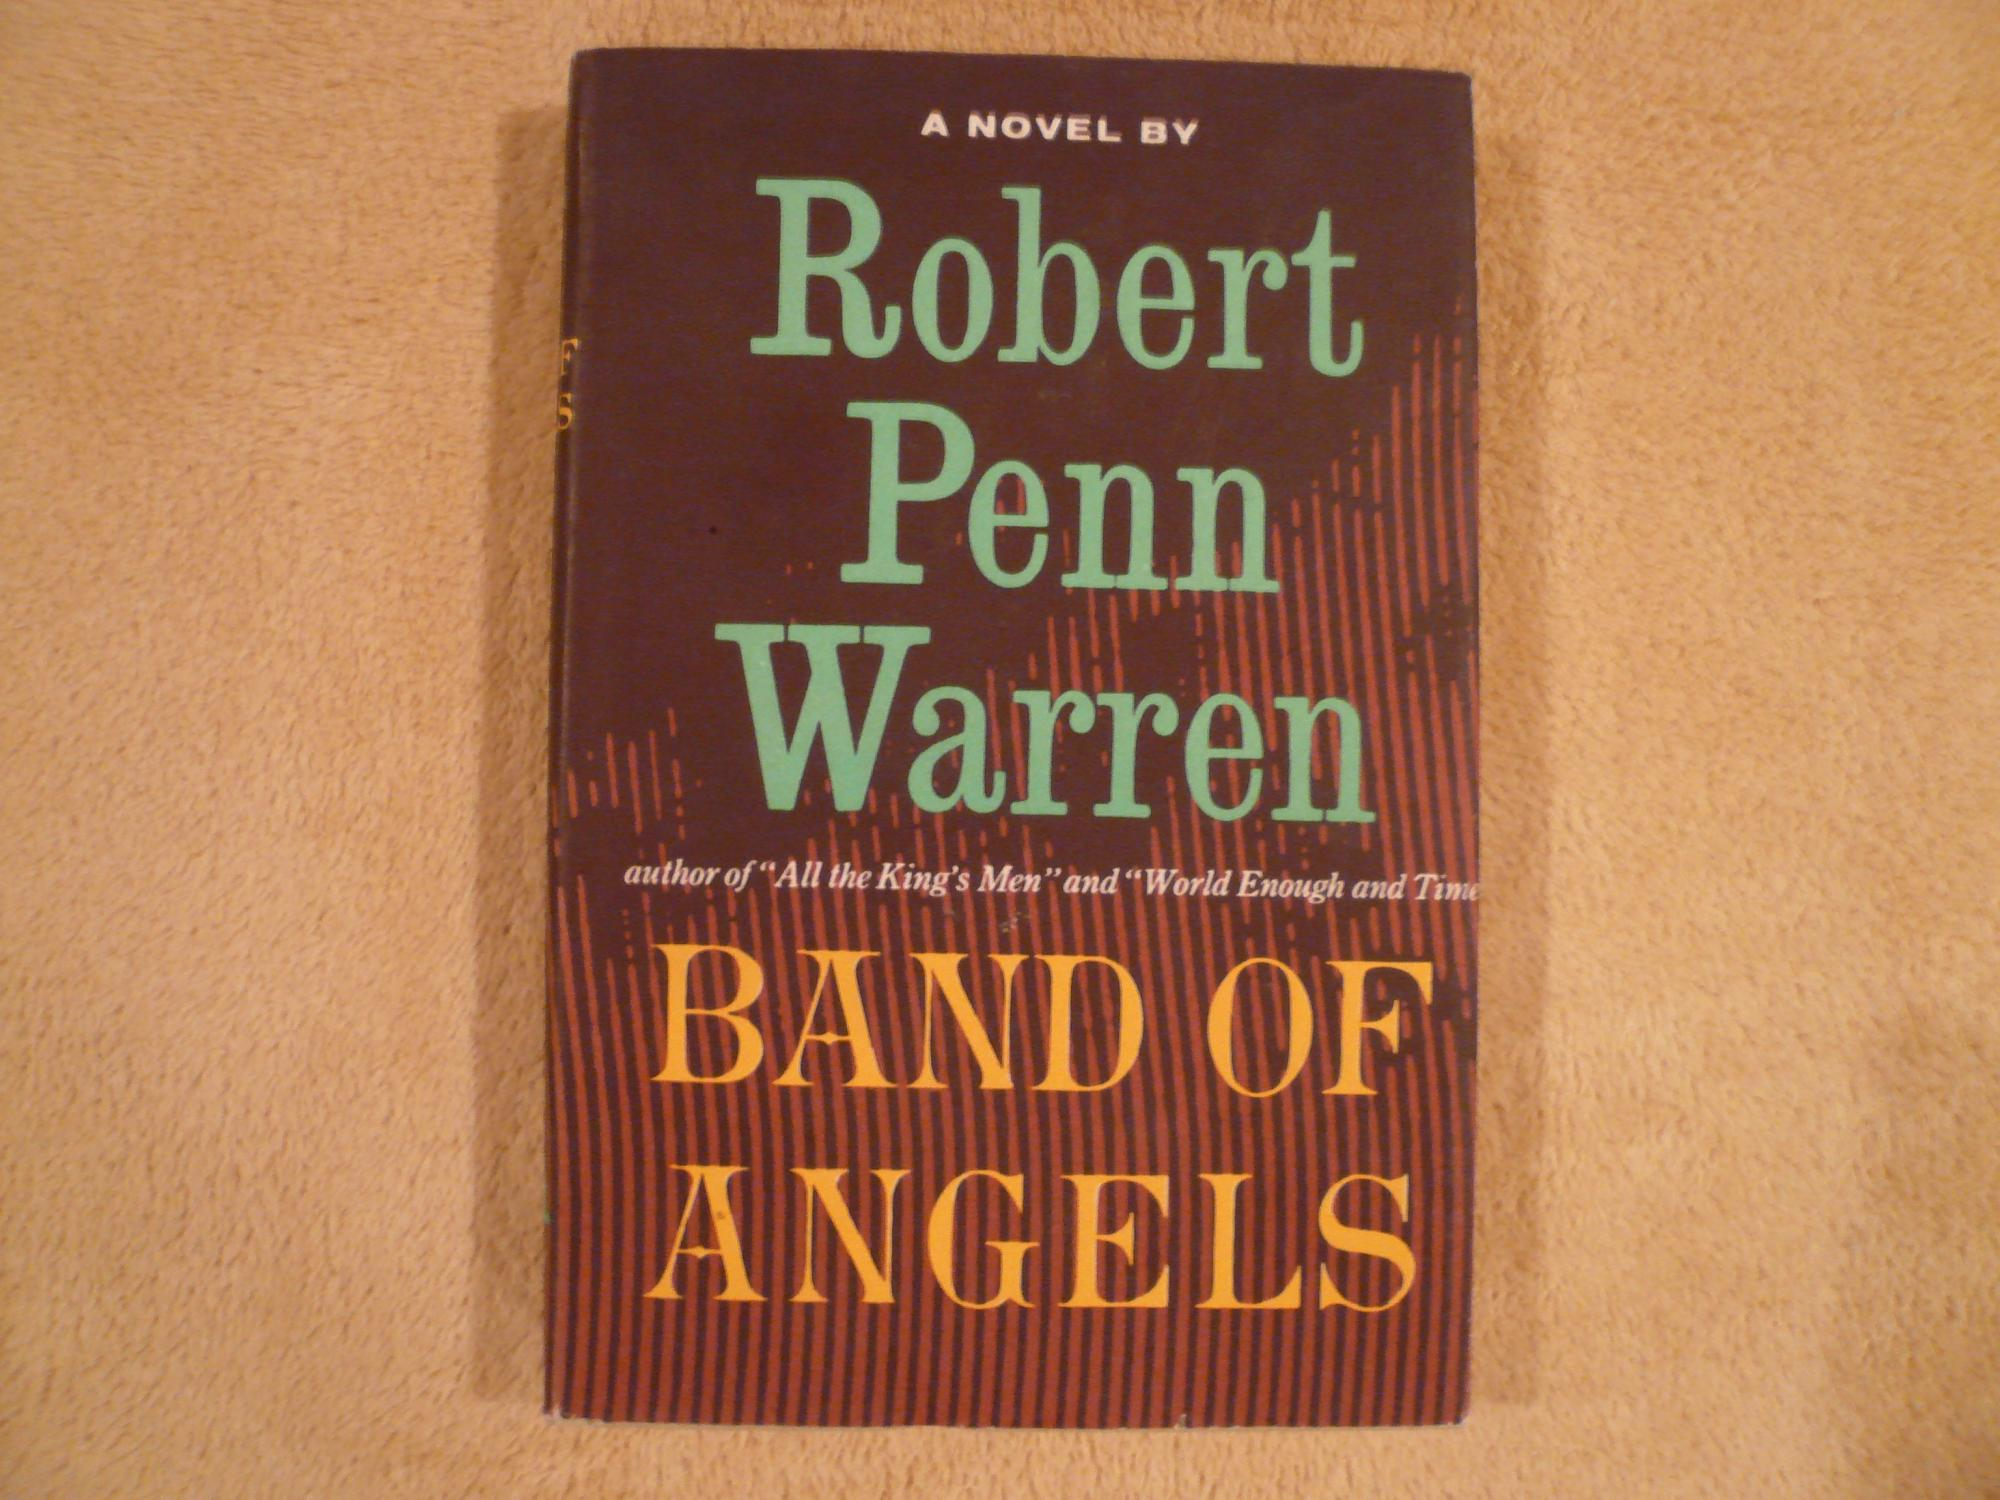 an analysis of the novel all the kings men by robert penn warren Free summary and analysis of the events in robert penn warren's all the king's men that won't make you snore we promise  novel isn't linear, it's easy to get.